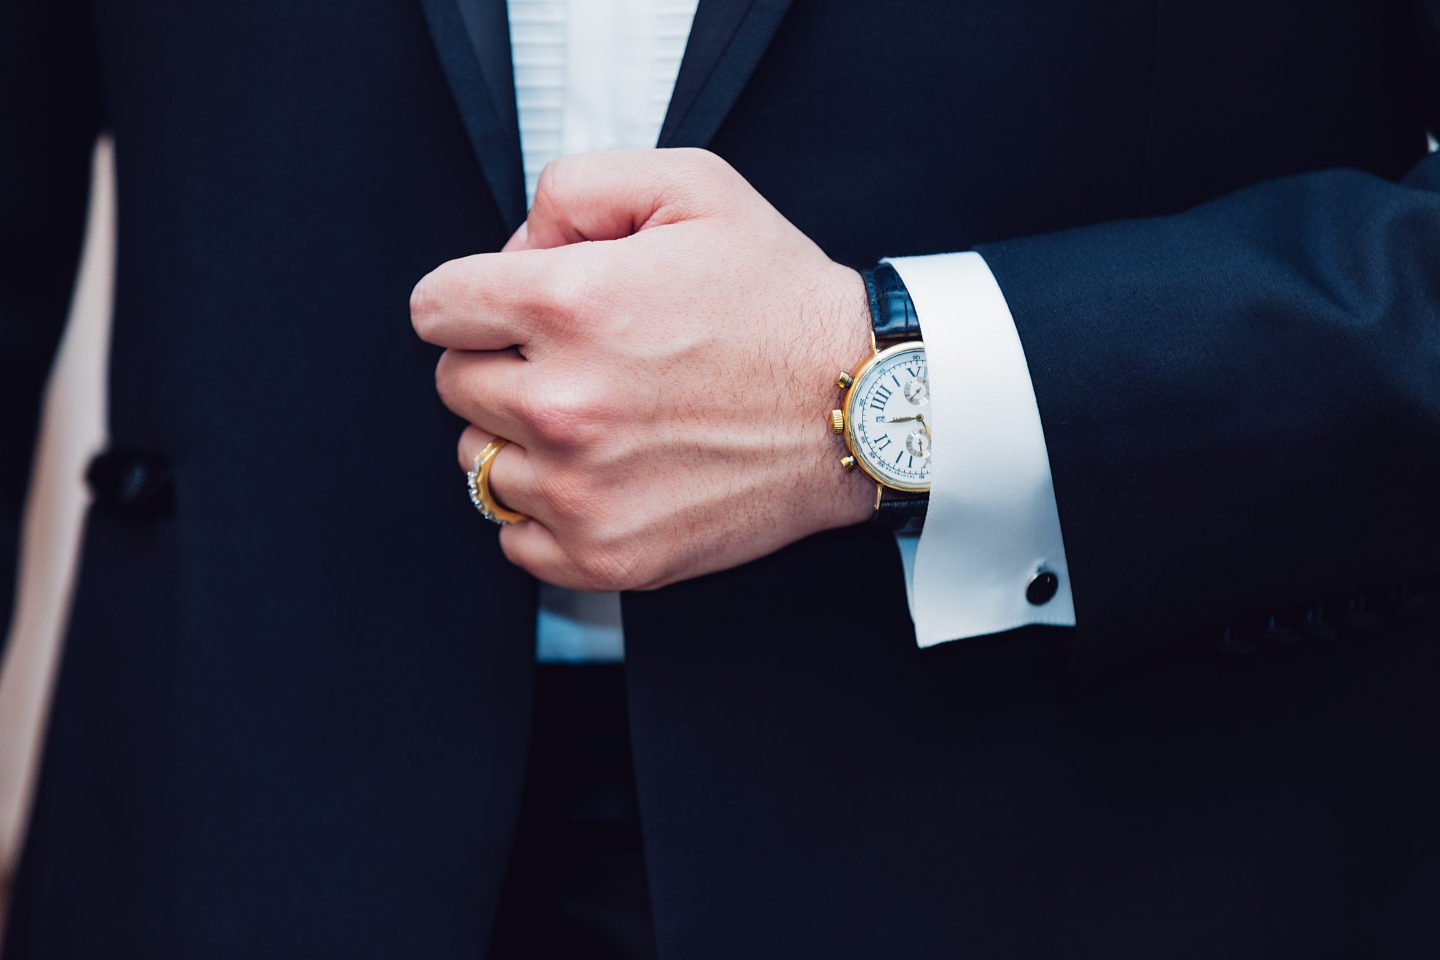 The Top 10 Rules Of Style